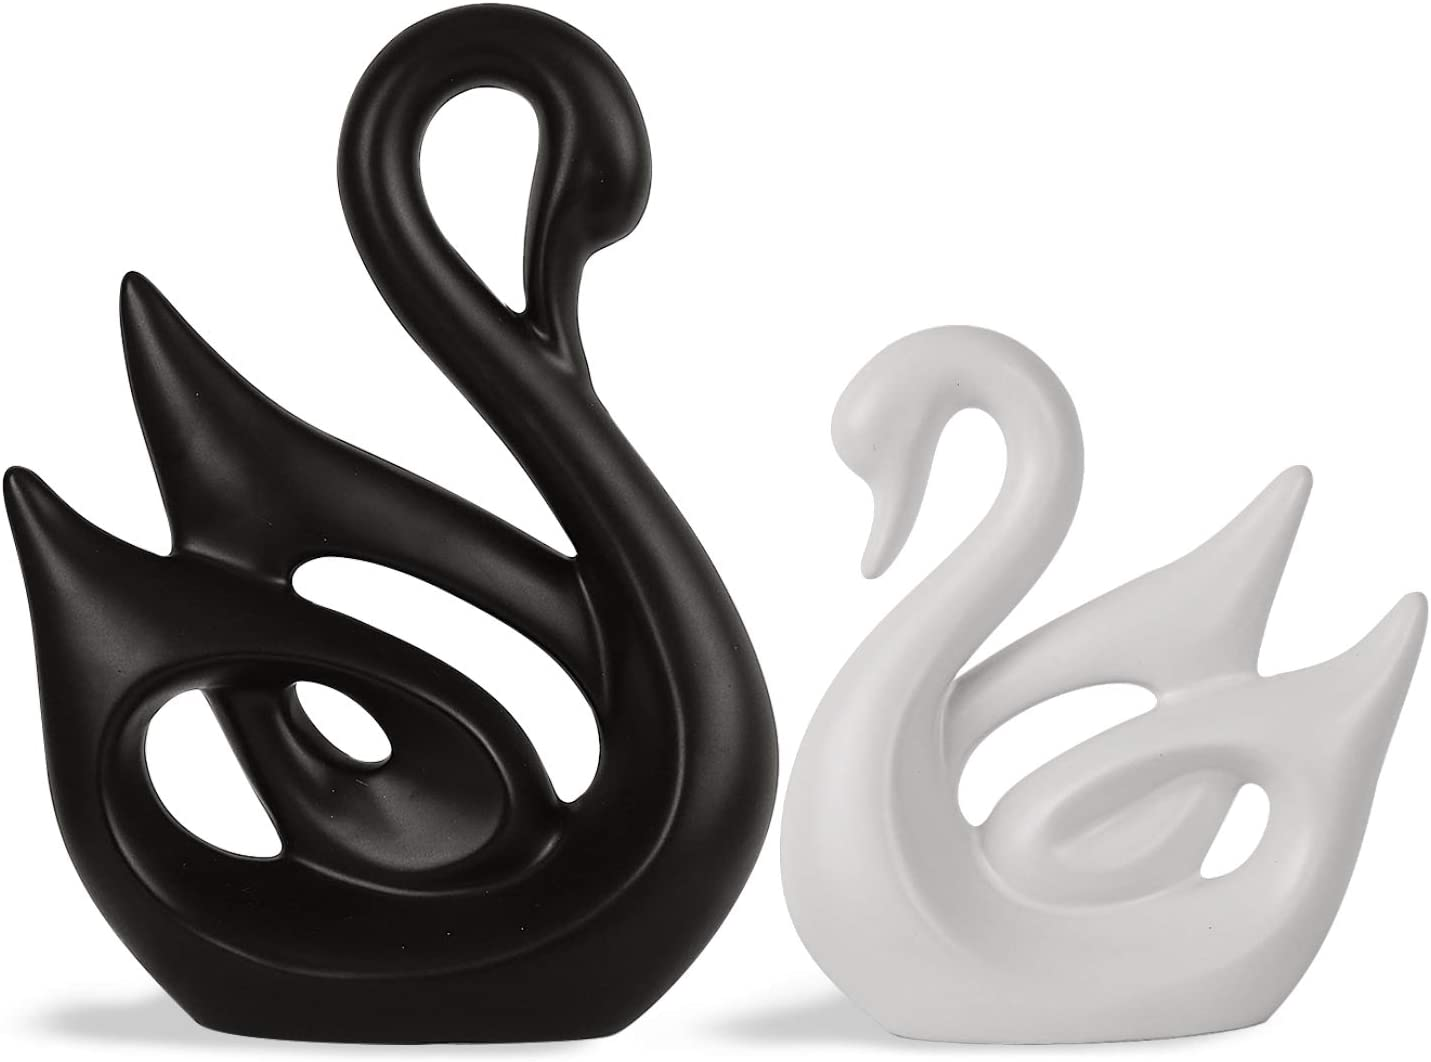 SANFERGE Ceramic Figurine Animal Porcelain Ornaments Crafts Art Sculpture Home Decor Accessories for Birthday Wedding Decorative Gifts (Swan)